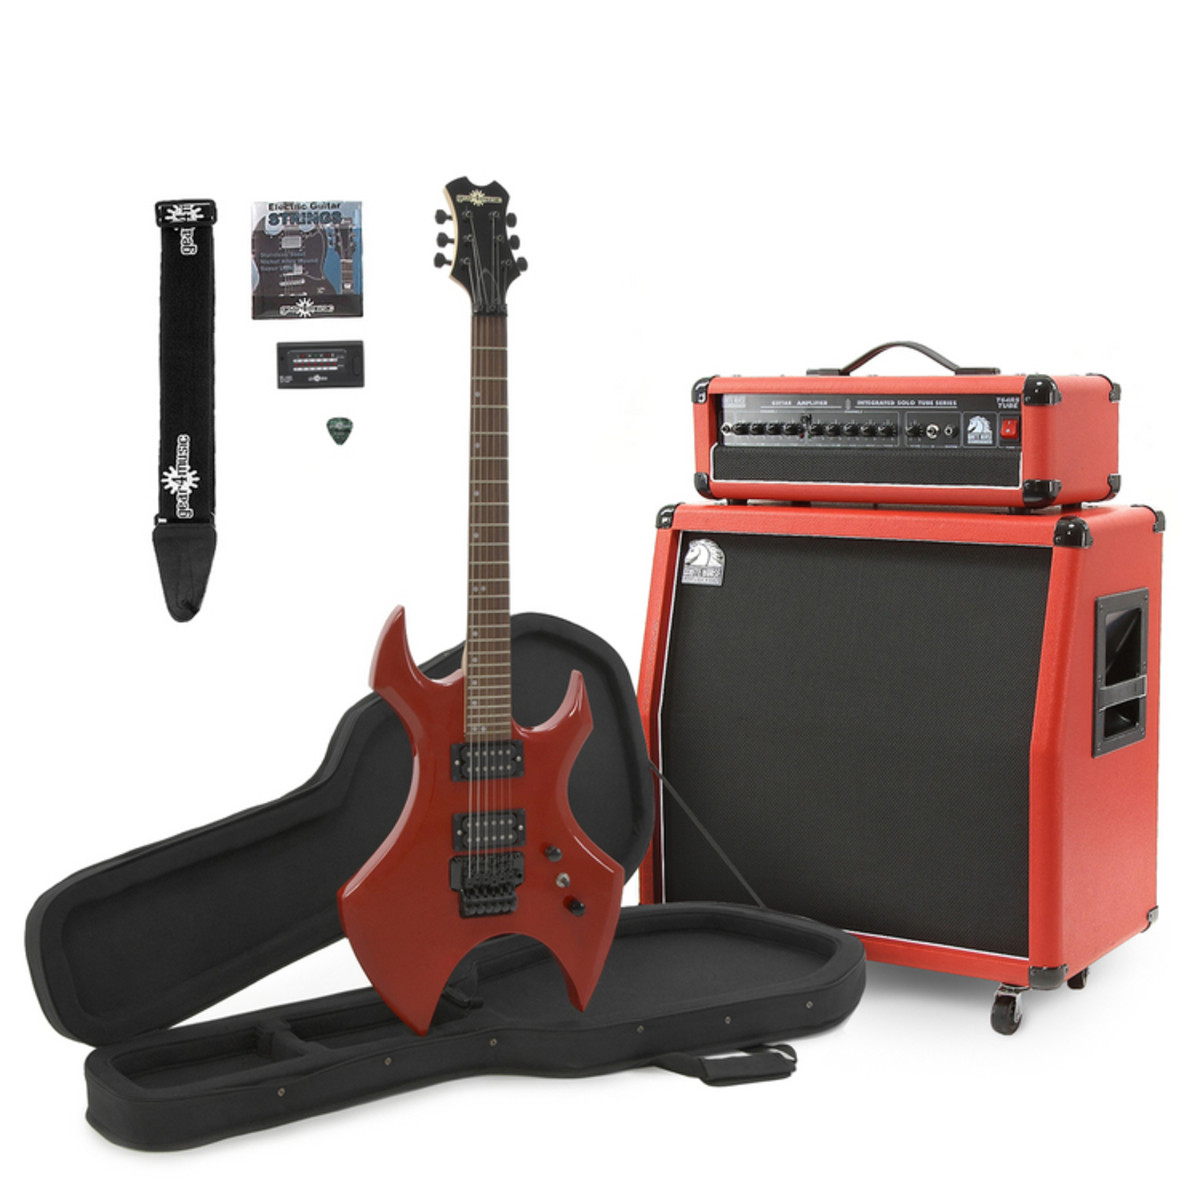 Metal-X Guitar + White Horse 60W Tube Guitar Amp with 4x8 Cab, Red ... 6a101eddff8